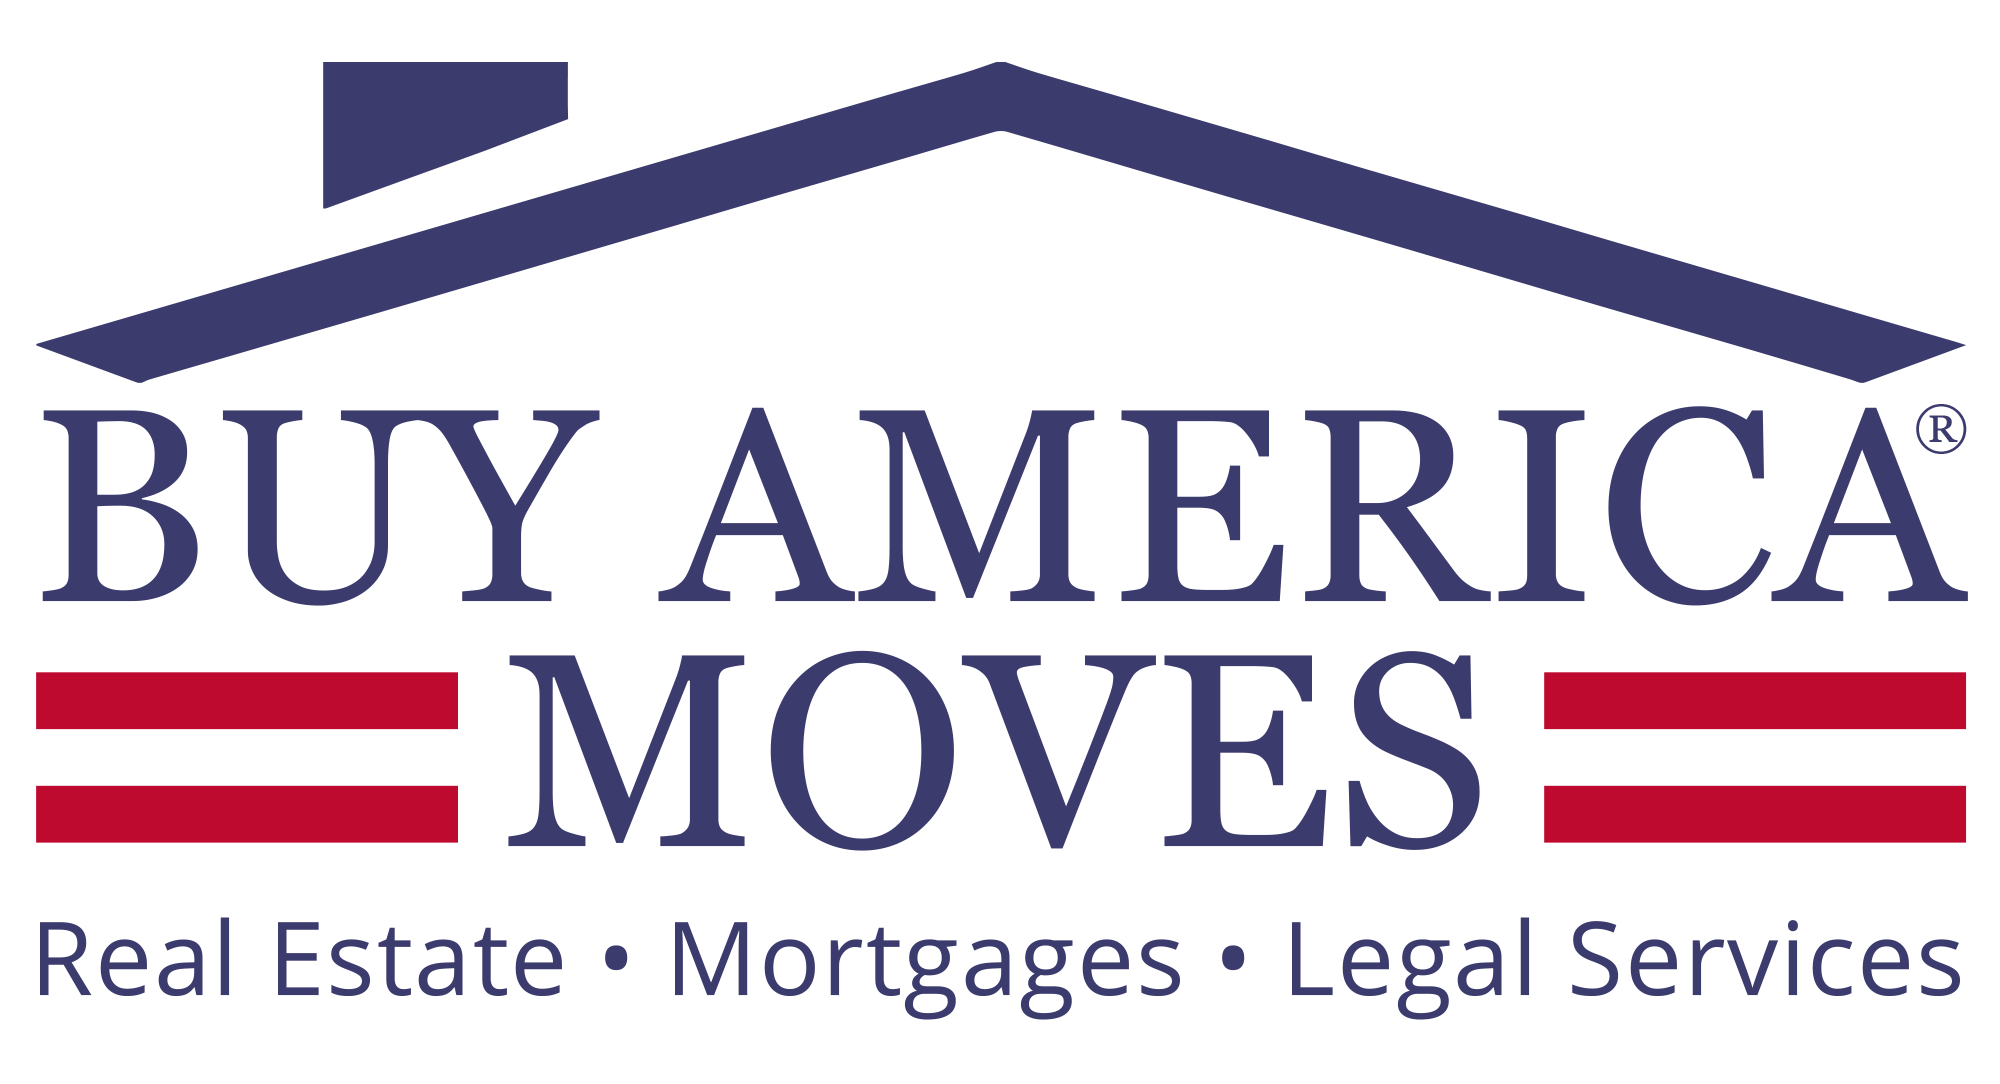 Buy America Moves